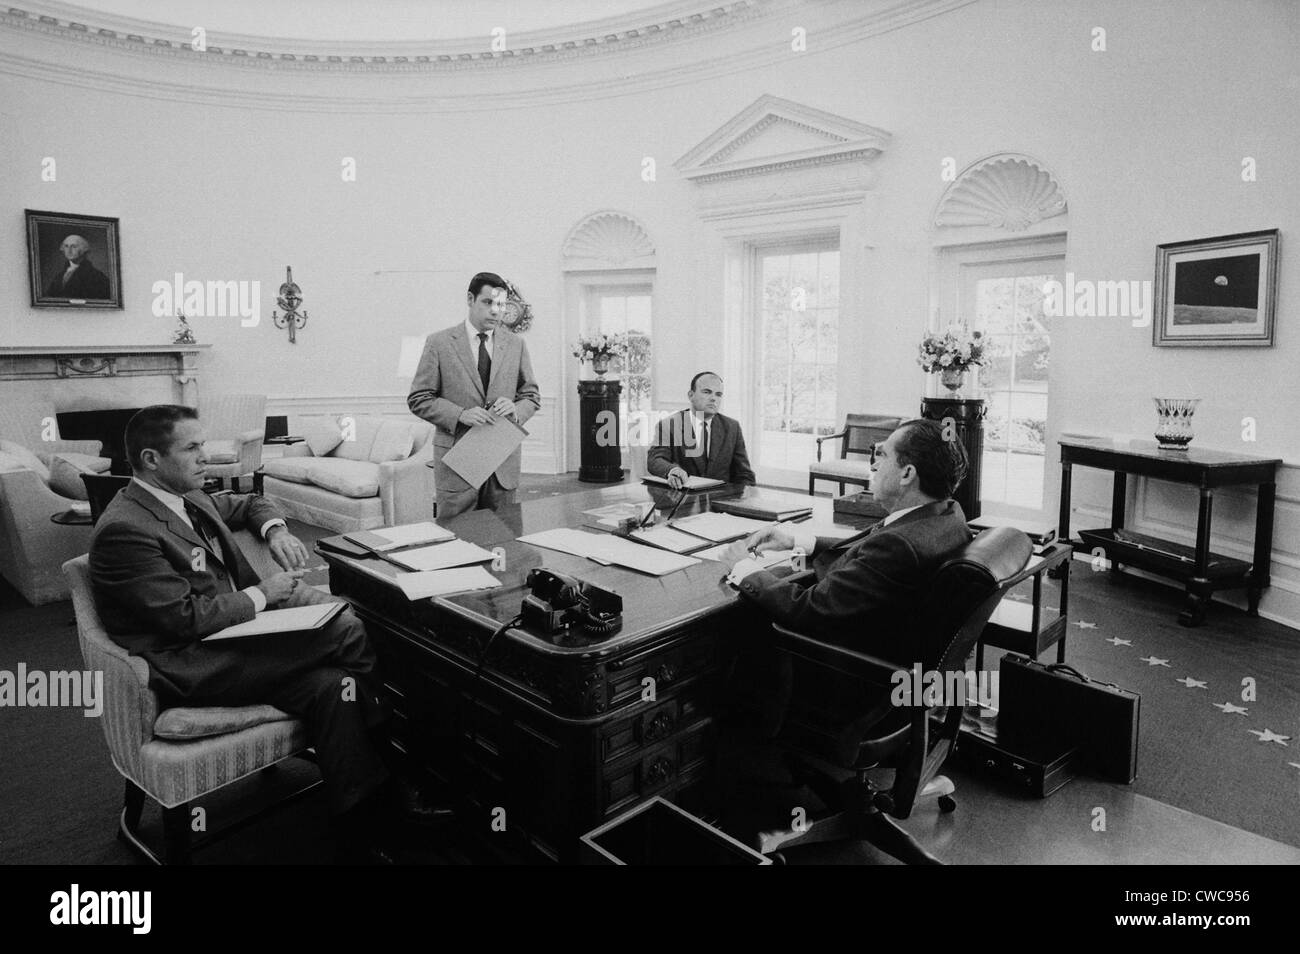 nixon office. President Nixon Meets With Chief Advisers In The Oval Office. L To R H.R. Haldeman Dwight Chapin John D. Ehrlichman Richard Office N